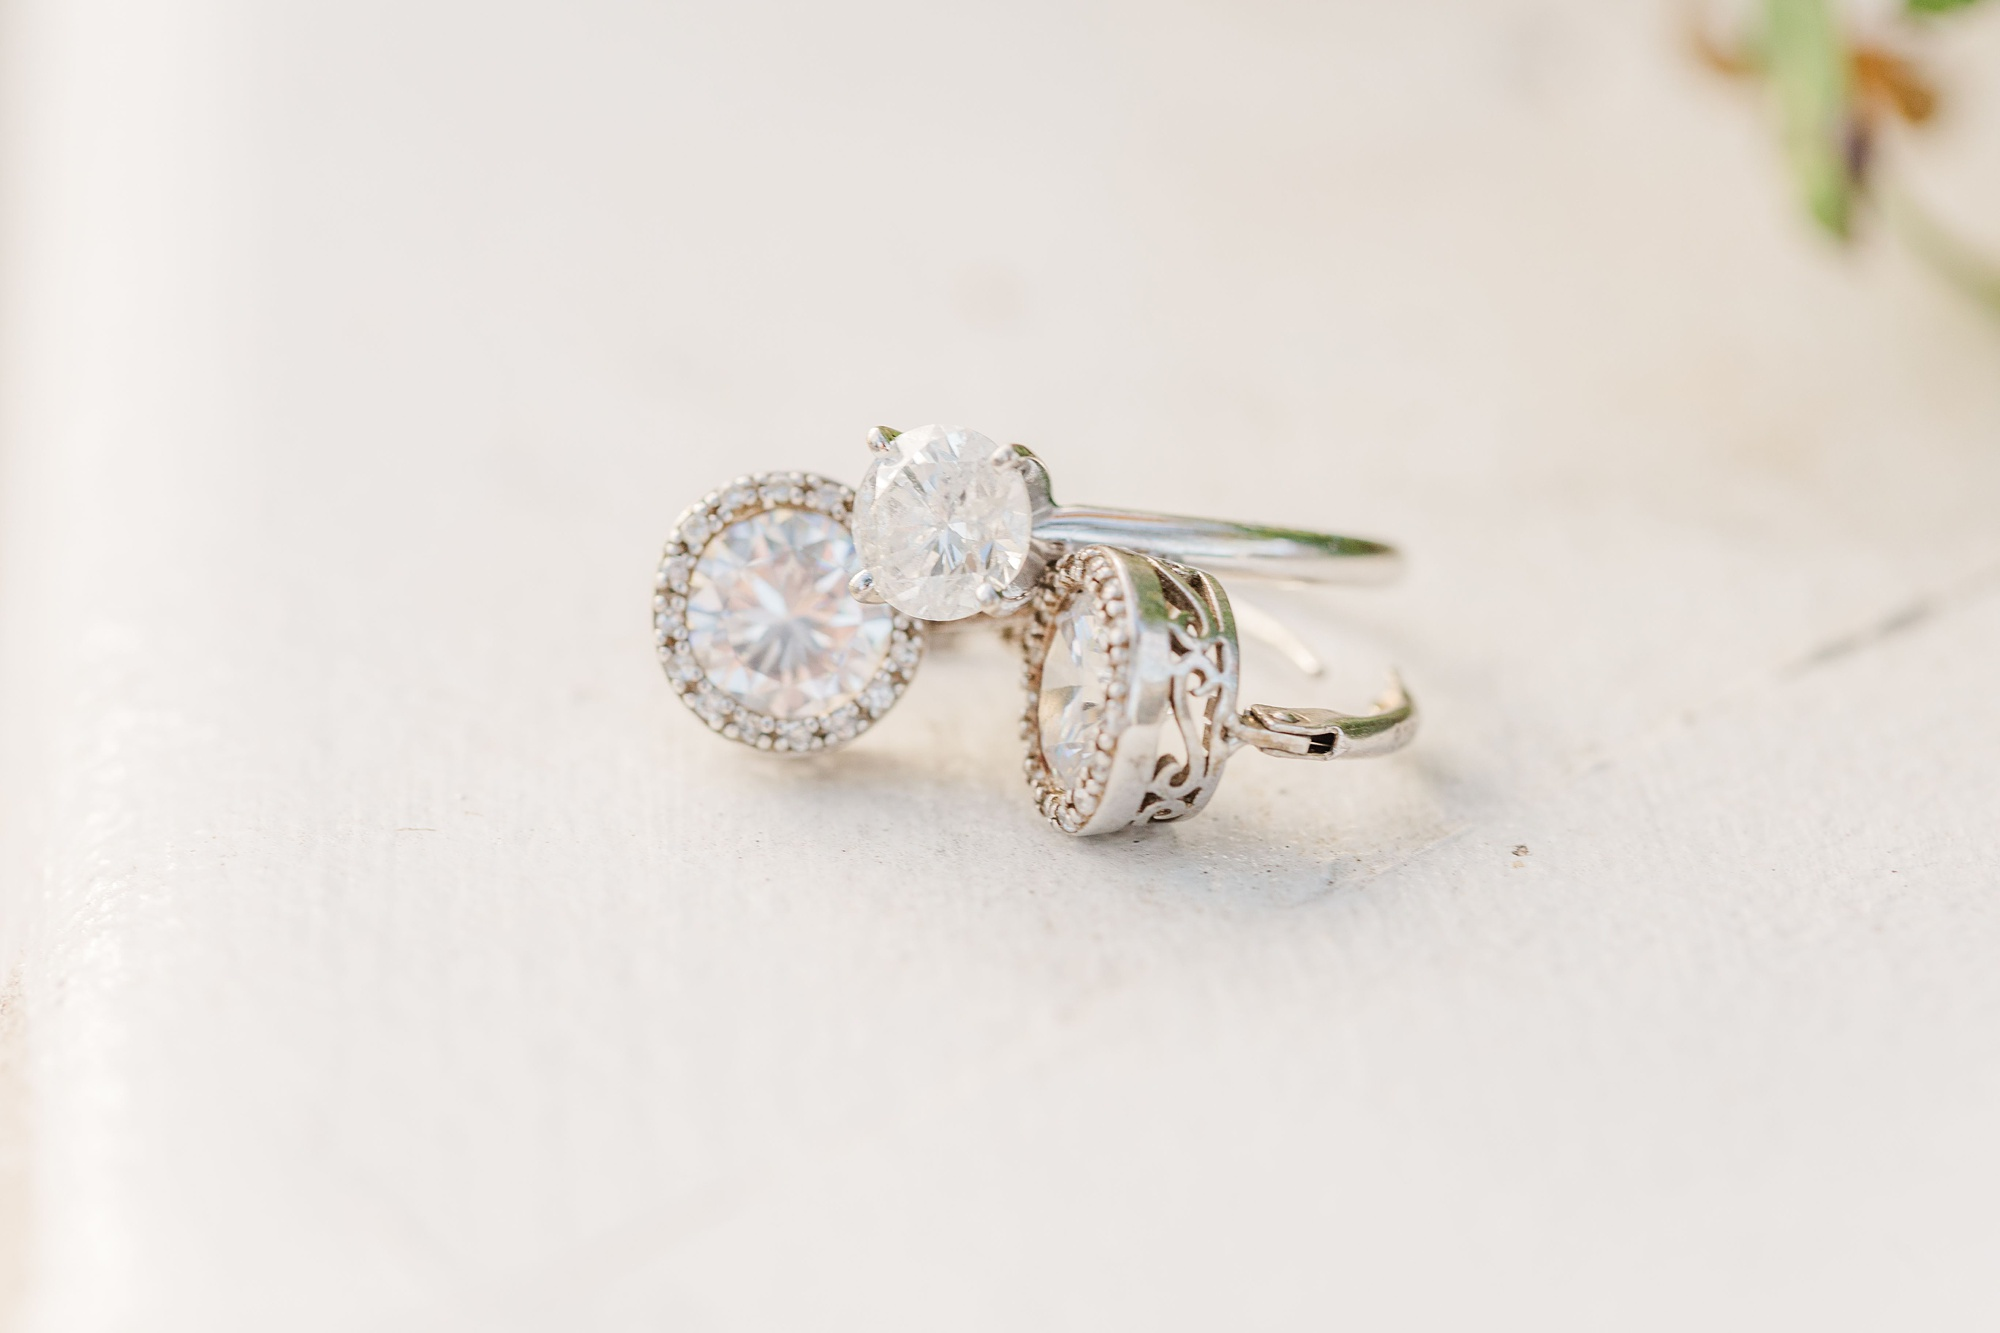 engagement ring rests on earrings